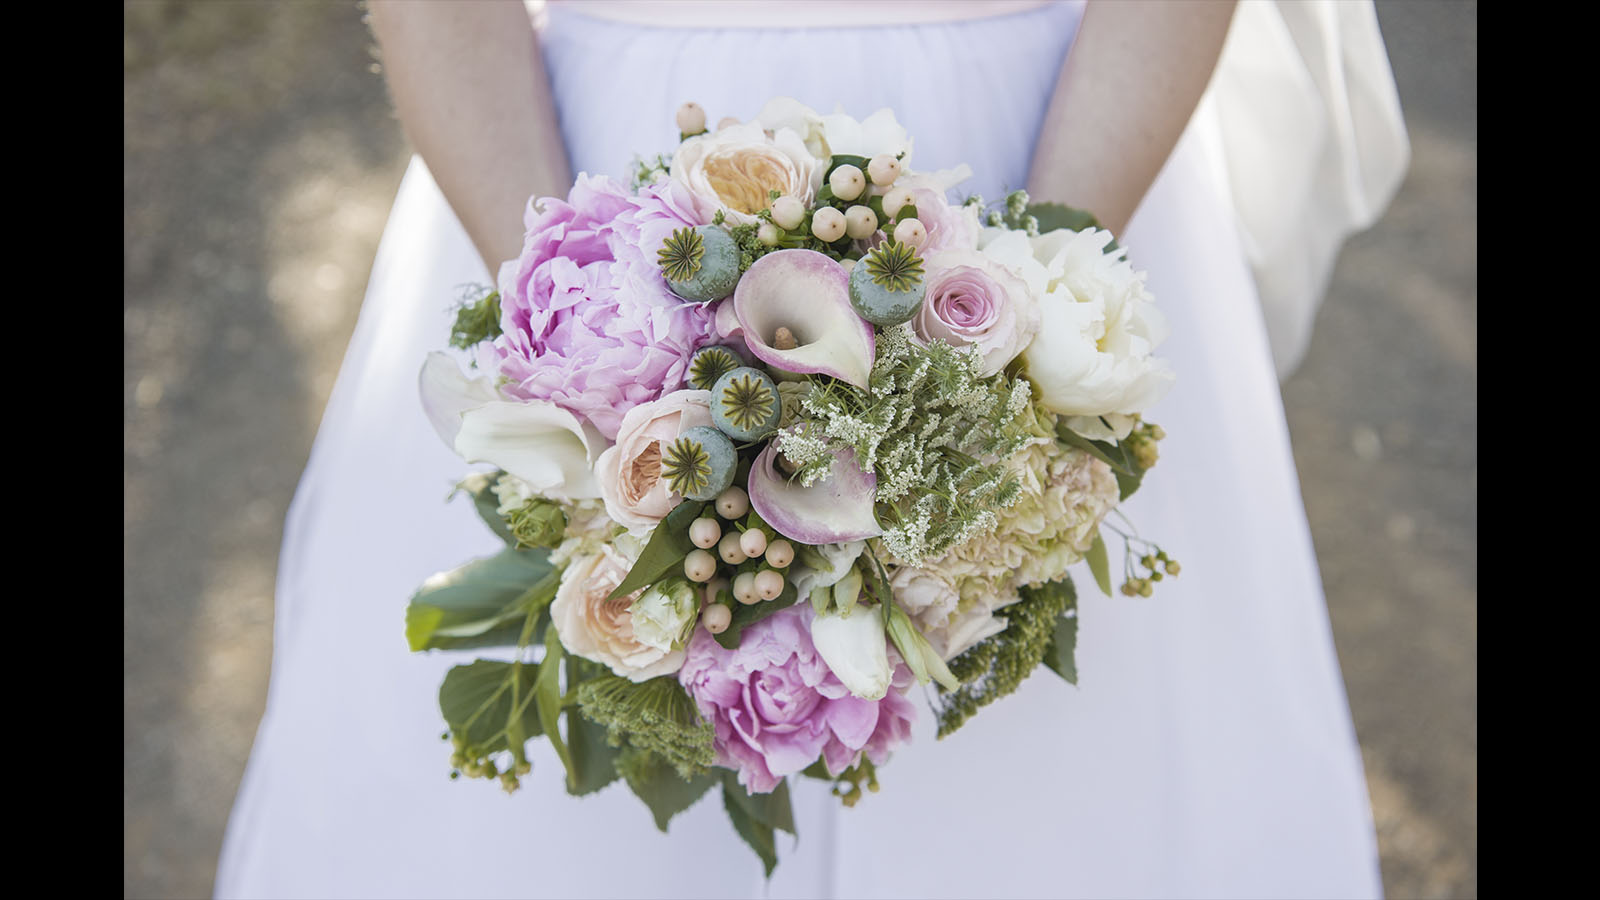 Melbourne brial wedding bouquet